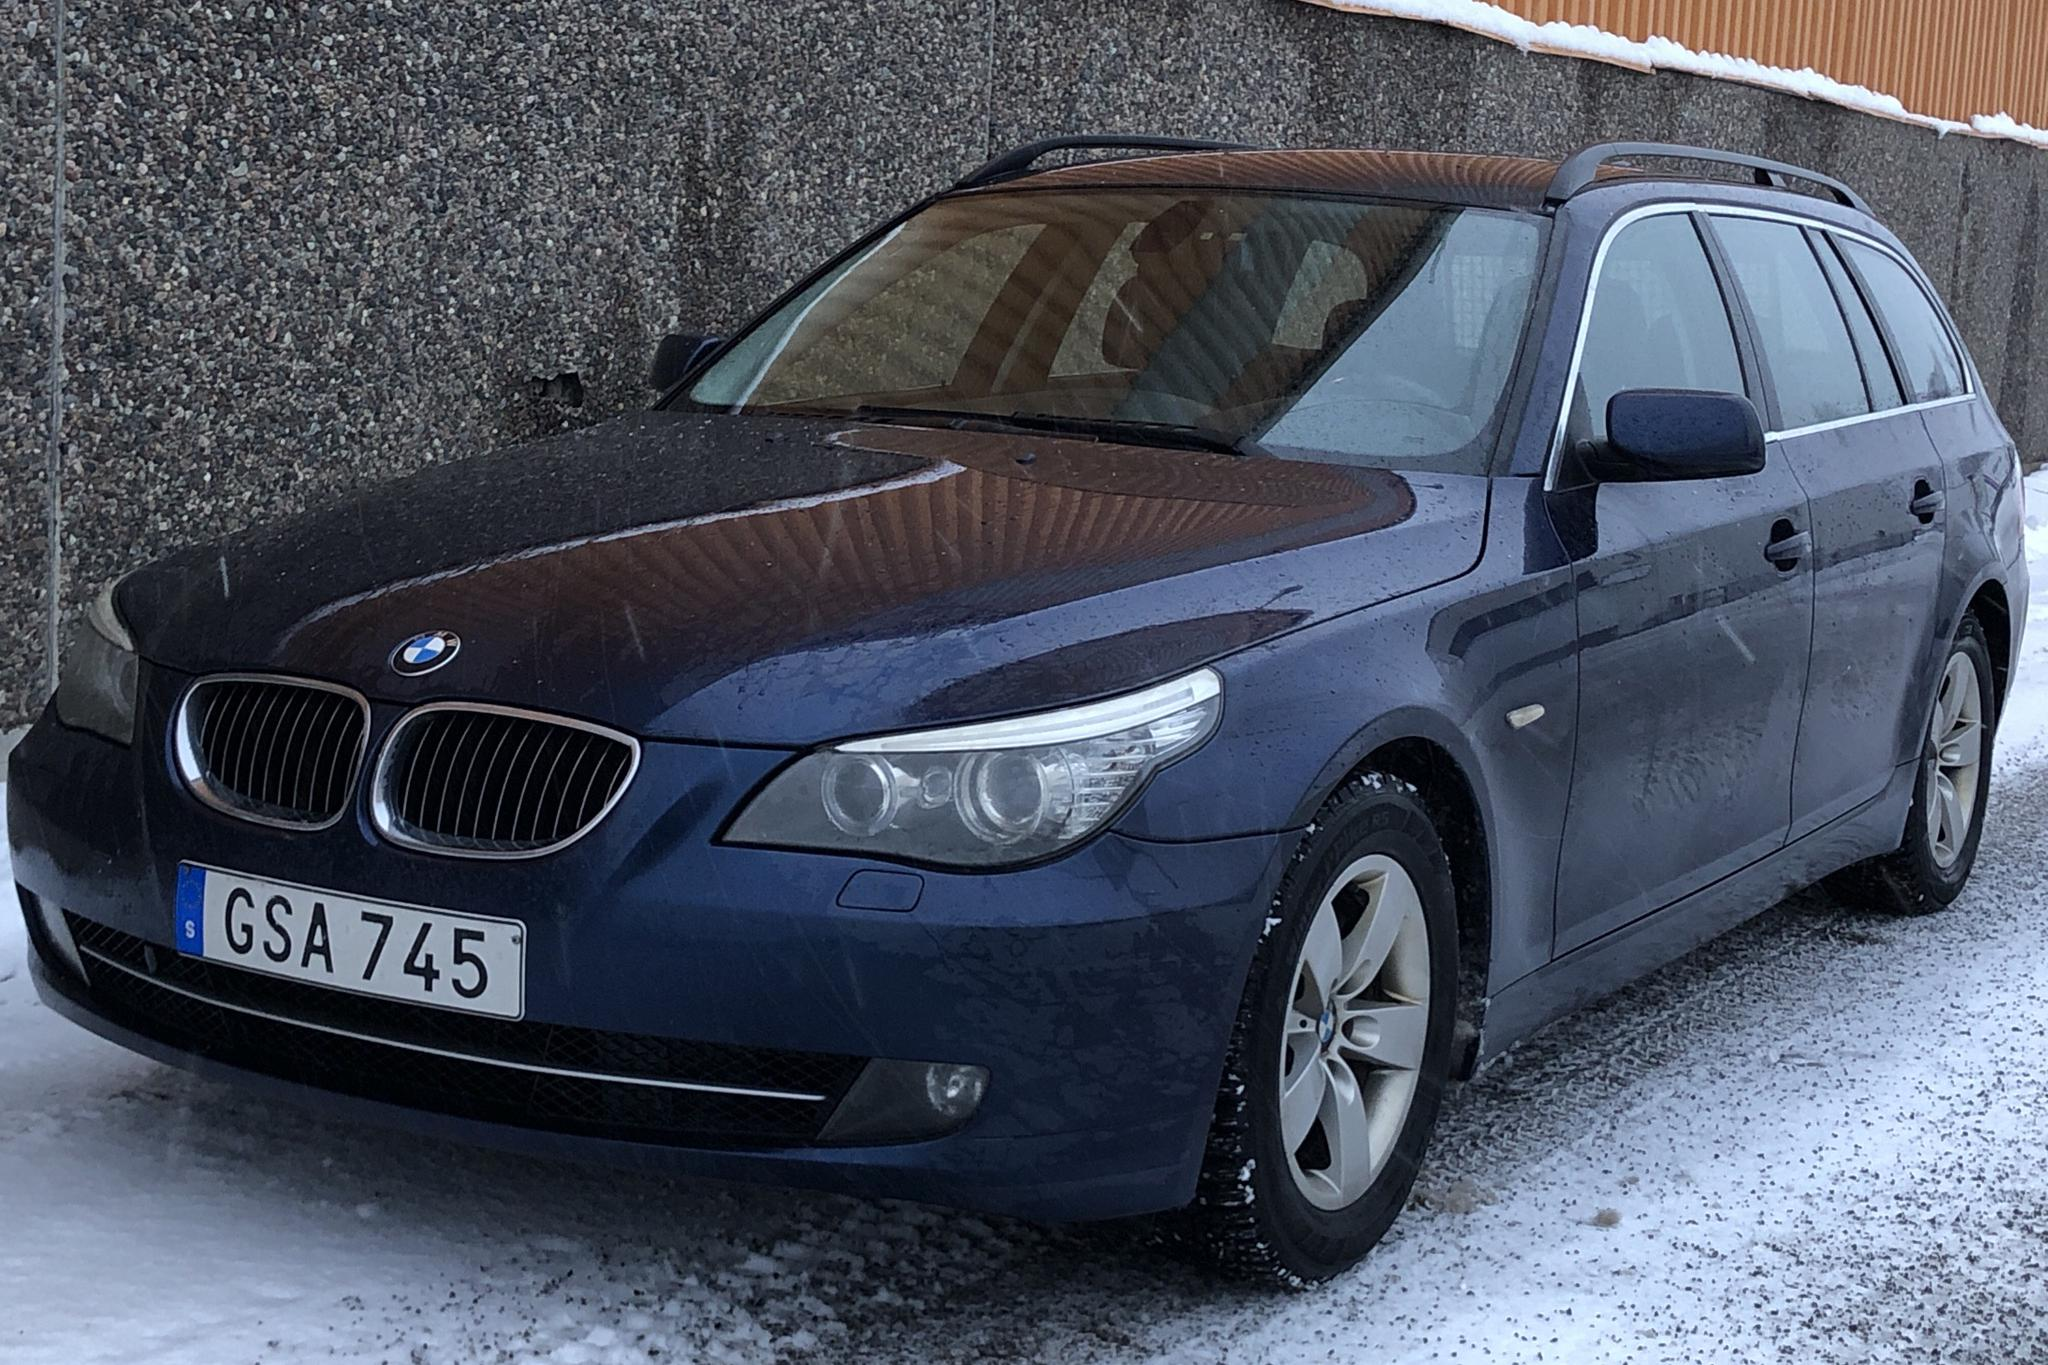 BMW 525i Touring, E61 (218hk) - 217 080 km - Manual - blue - 2008